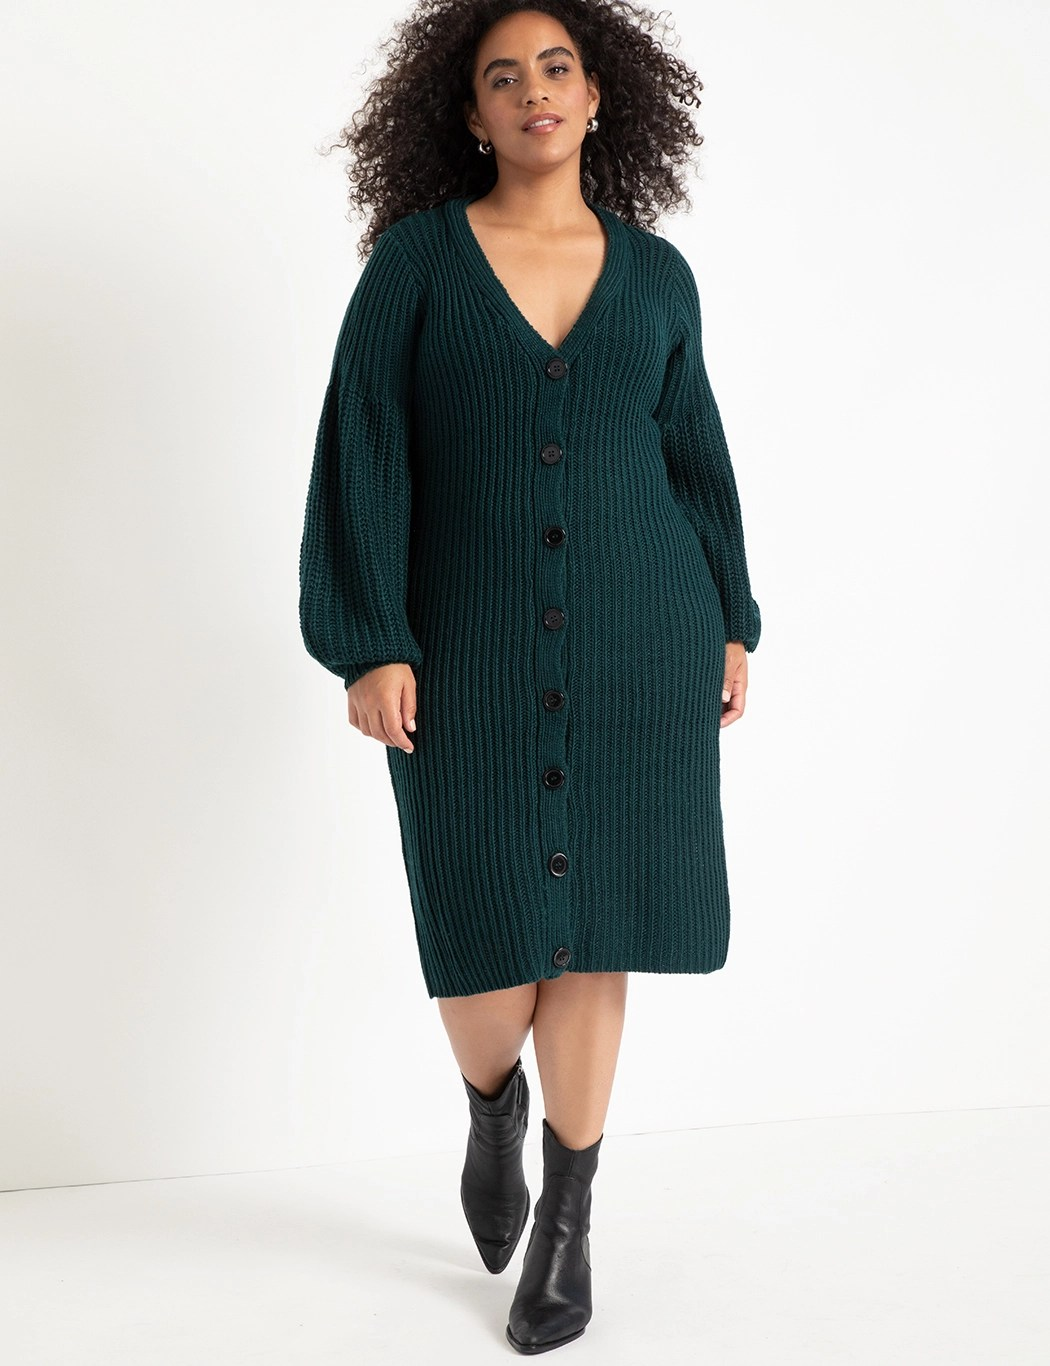 Cardigan Sweater Dress 13